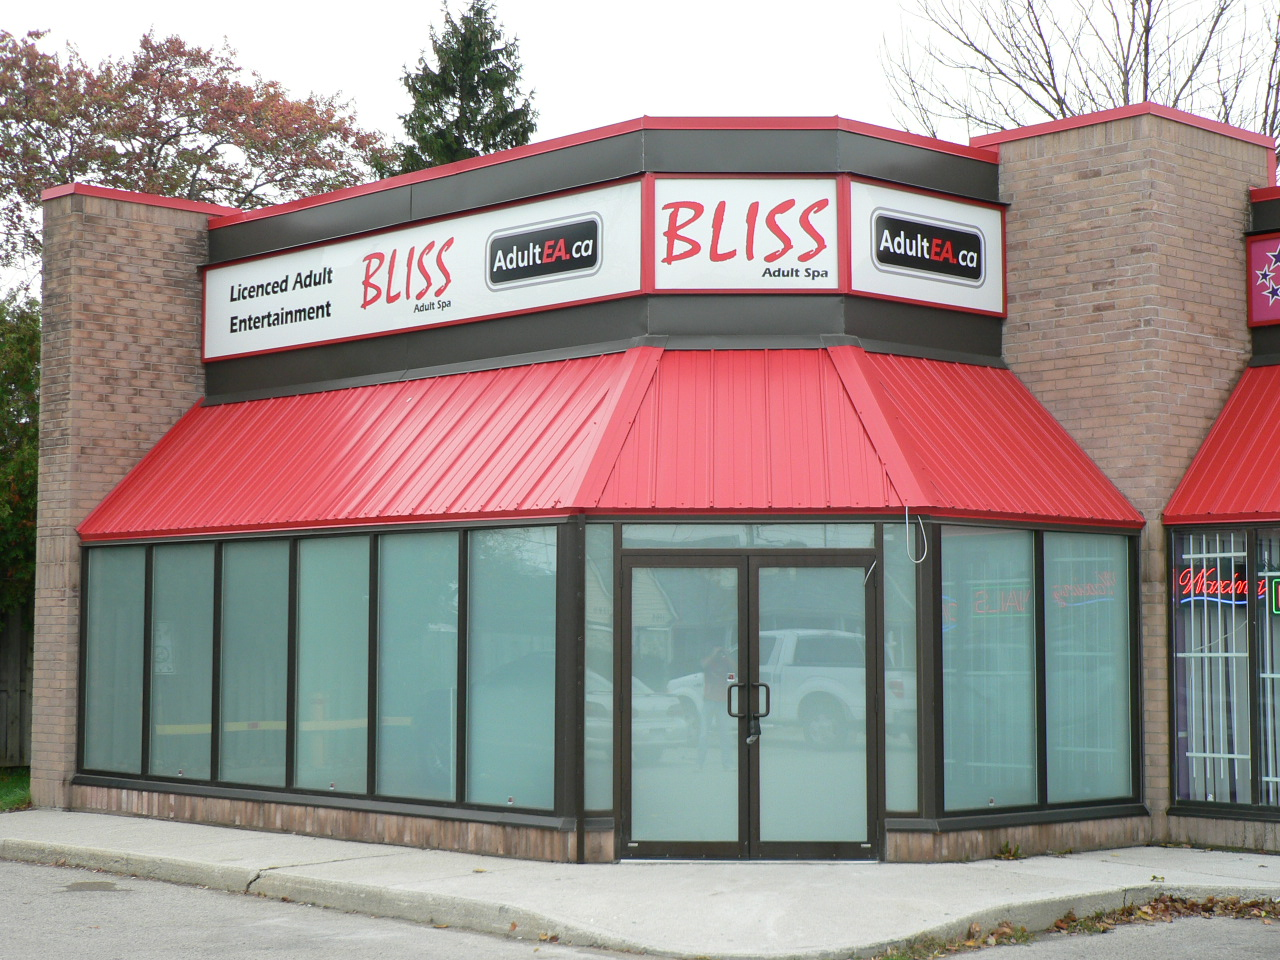 BLISS Adult Spa